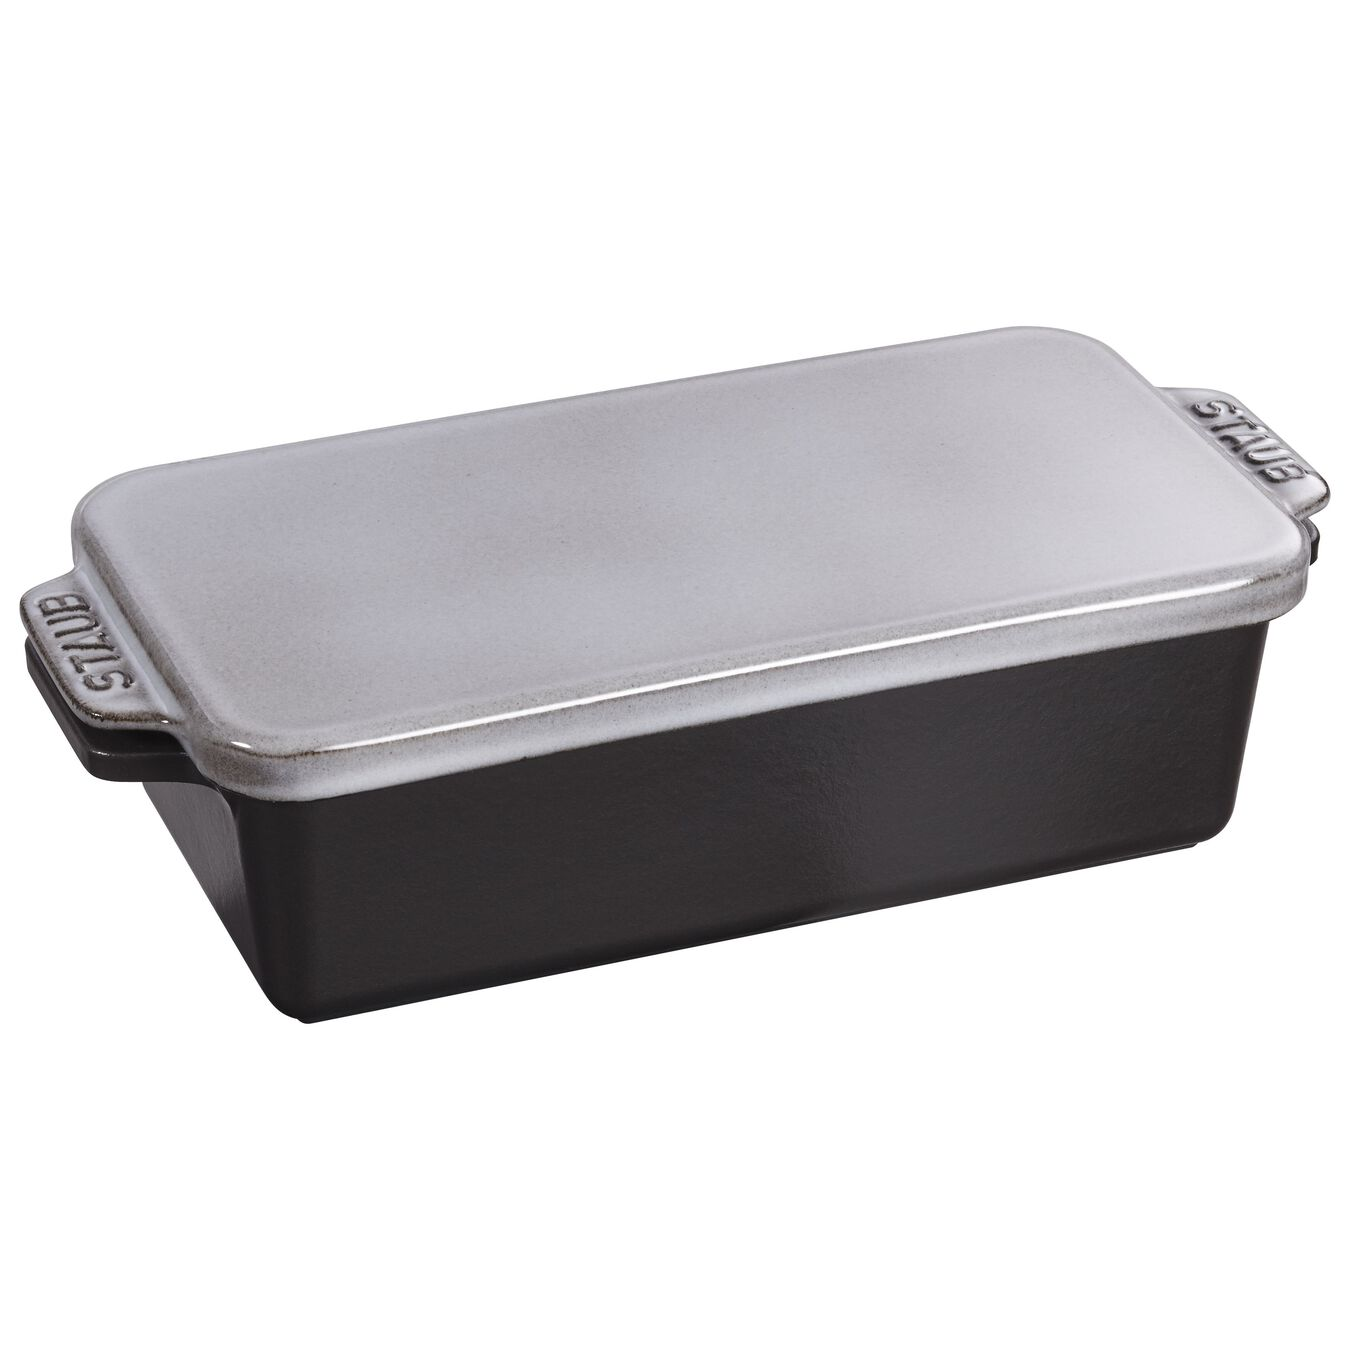 12.75-inch x 5.25-inch Covered Loaf Pan - Graphite Grey,,large 1